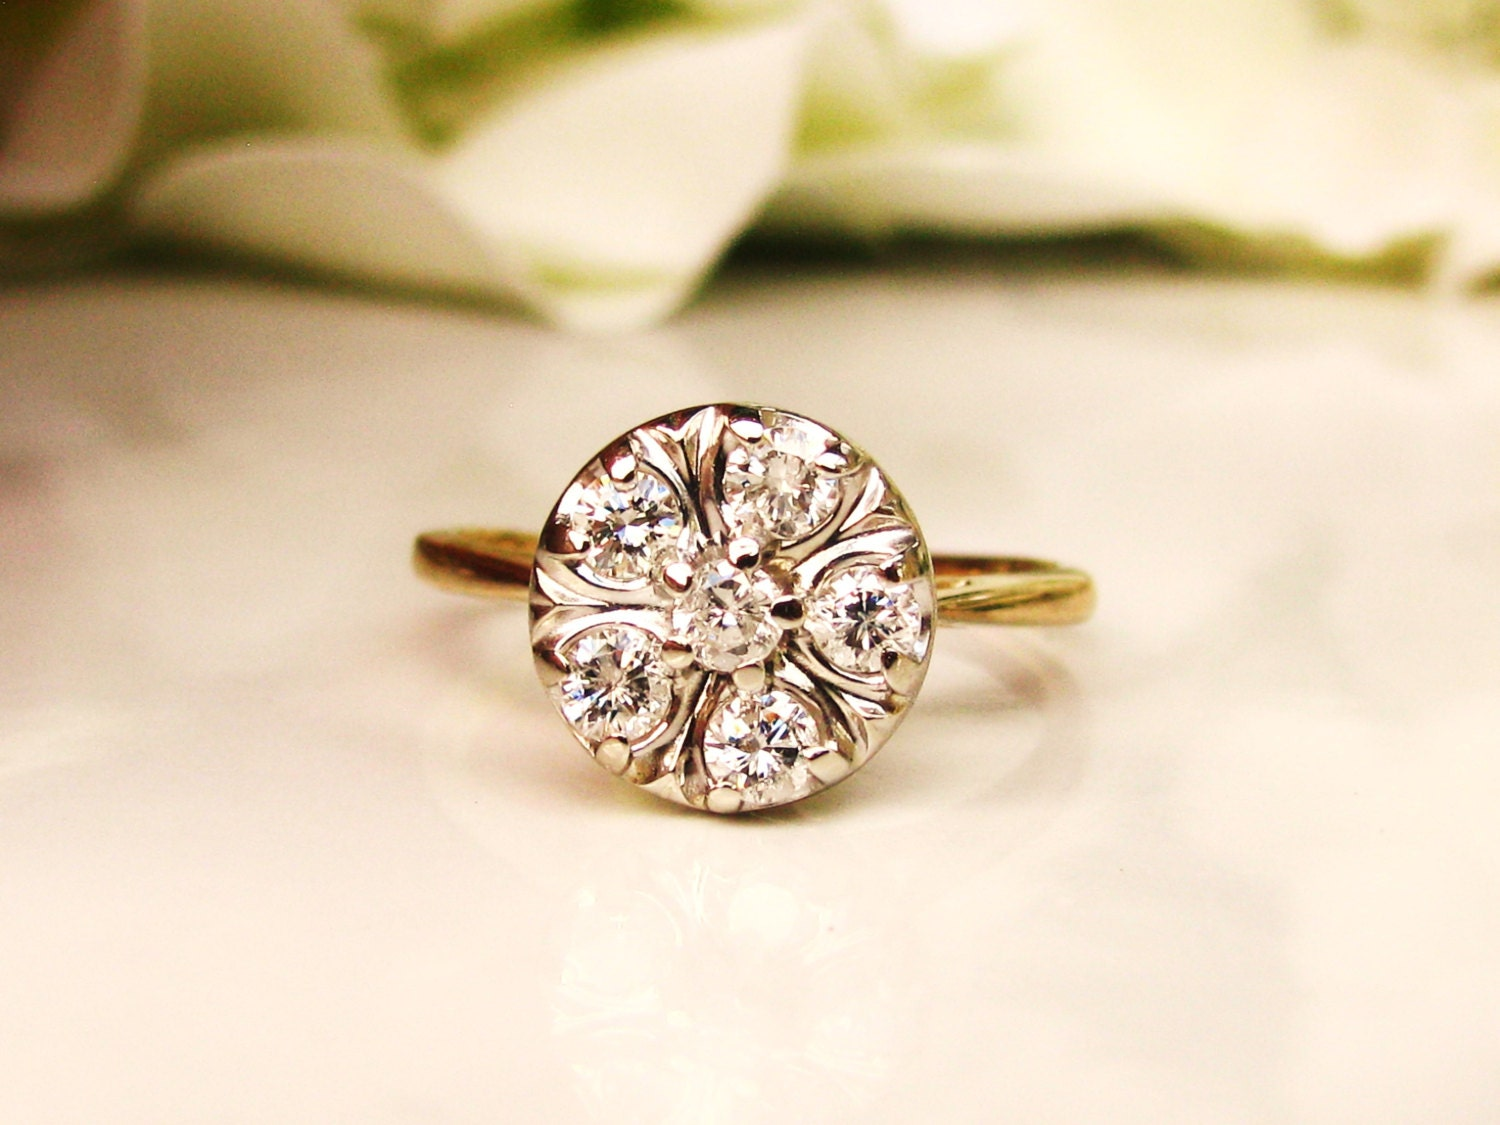 edwardian ring video engagement wedding cluster halo ship diamond daisy fullxfull products il cut rings with anniversary vintage antique old flower transitional